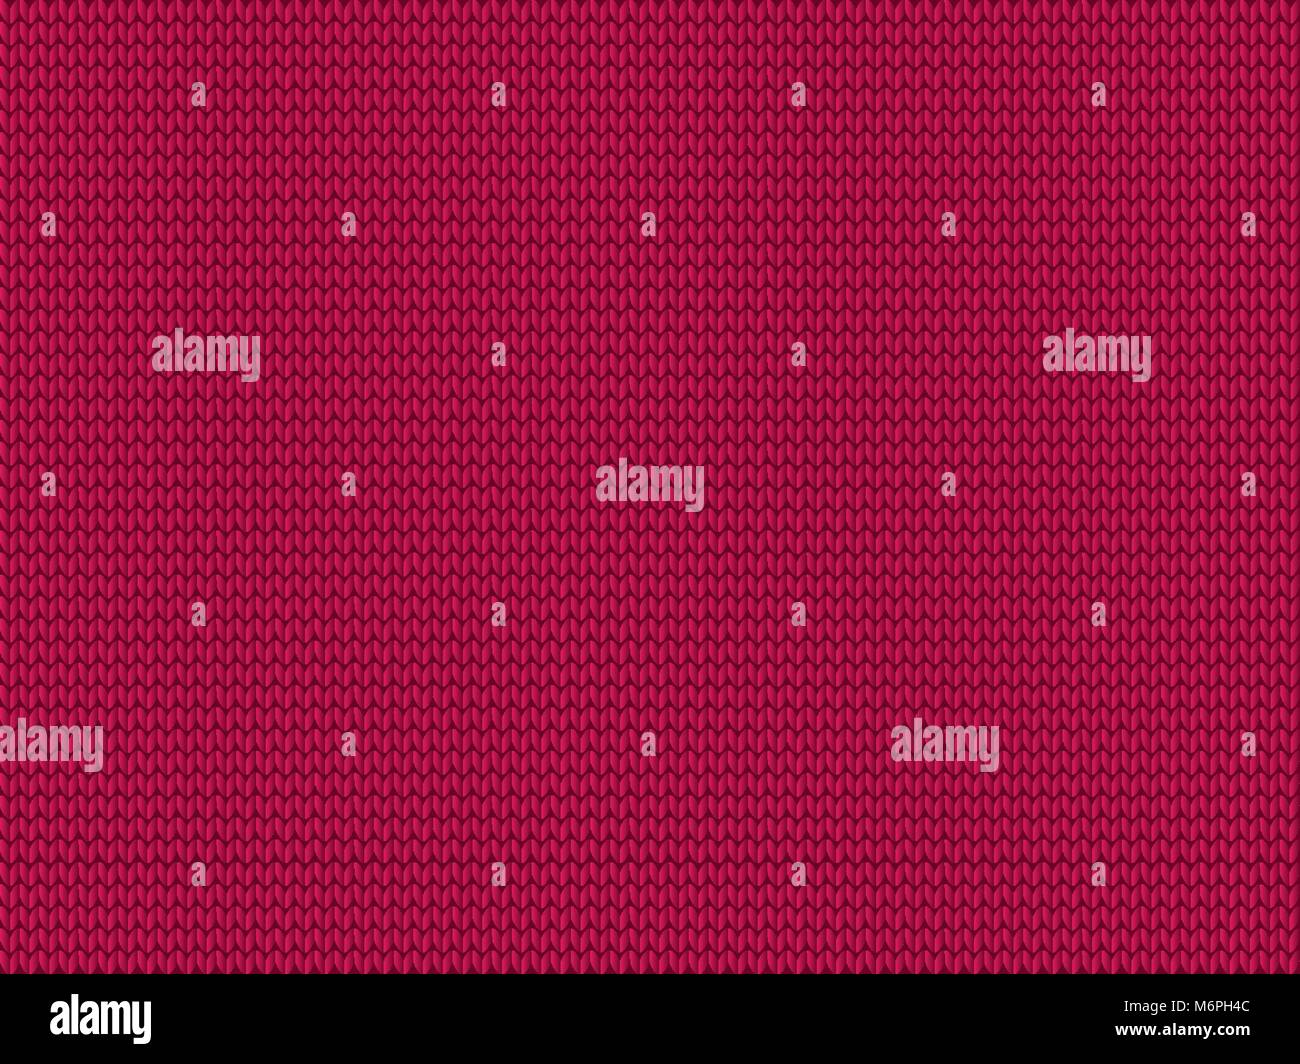 Burgundy knitted fabric background. Vector illustration, template with space for text. - Stock Vector